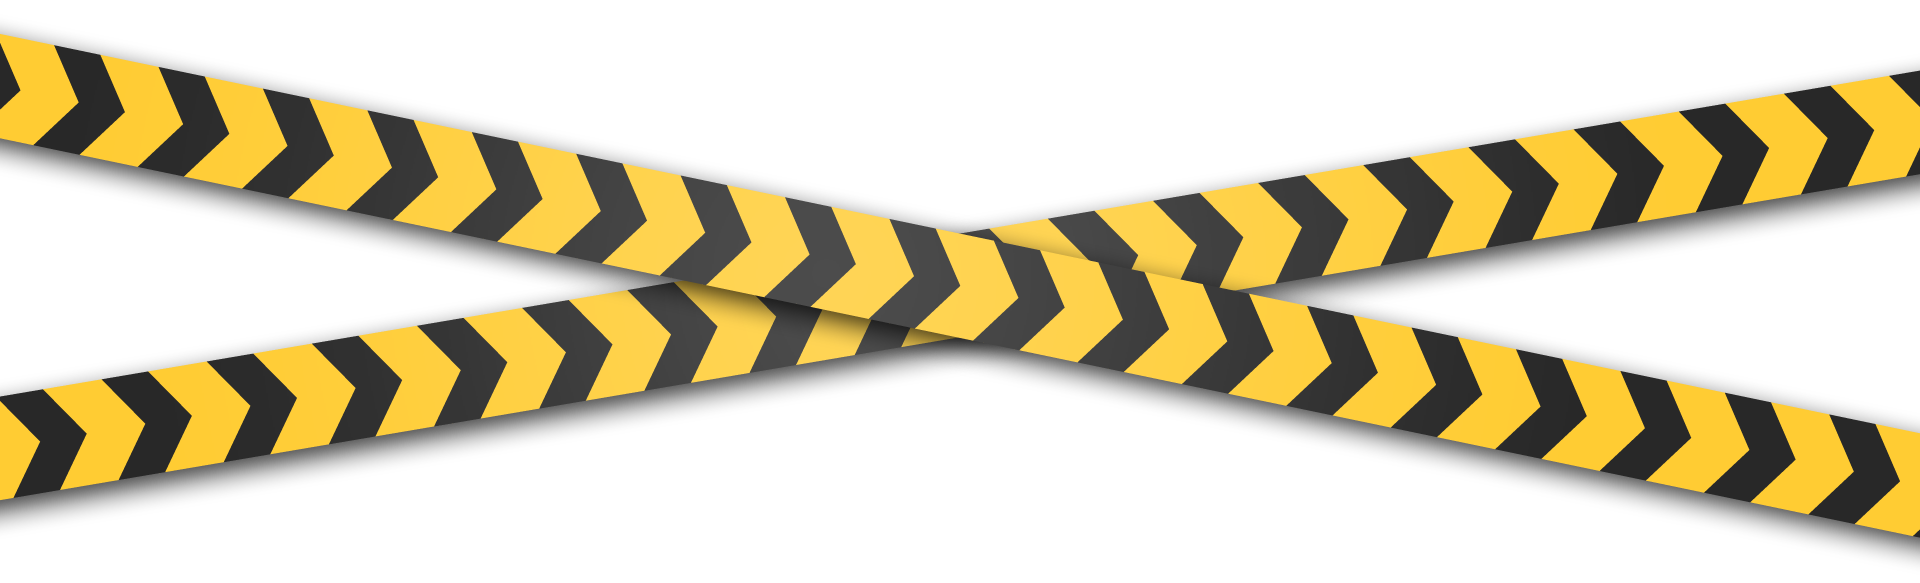 Under construction tape png. Images label free download